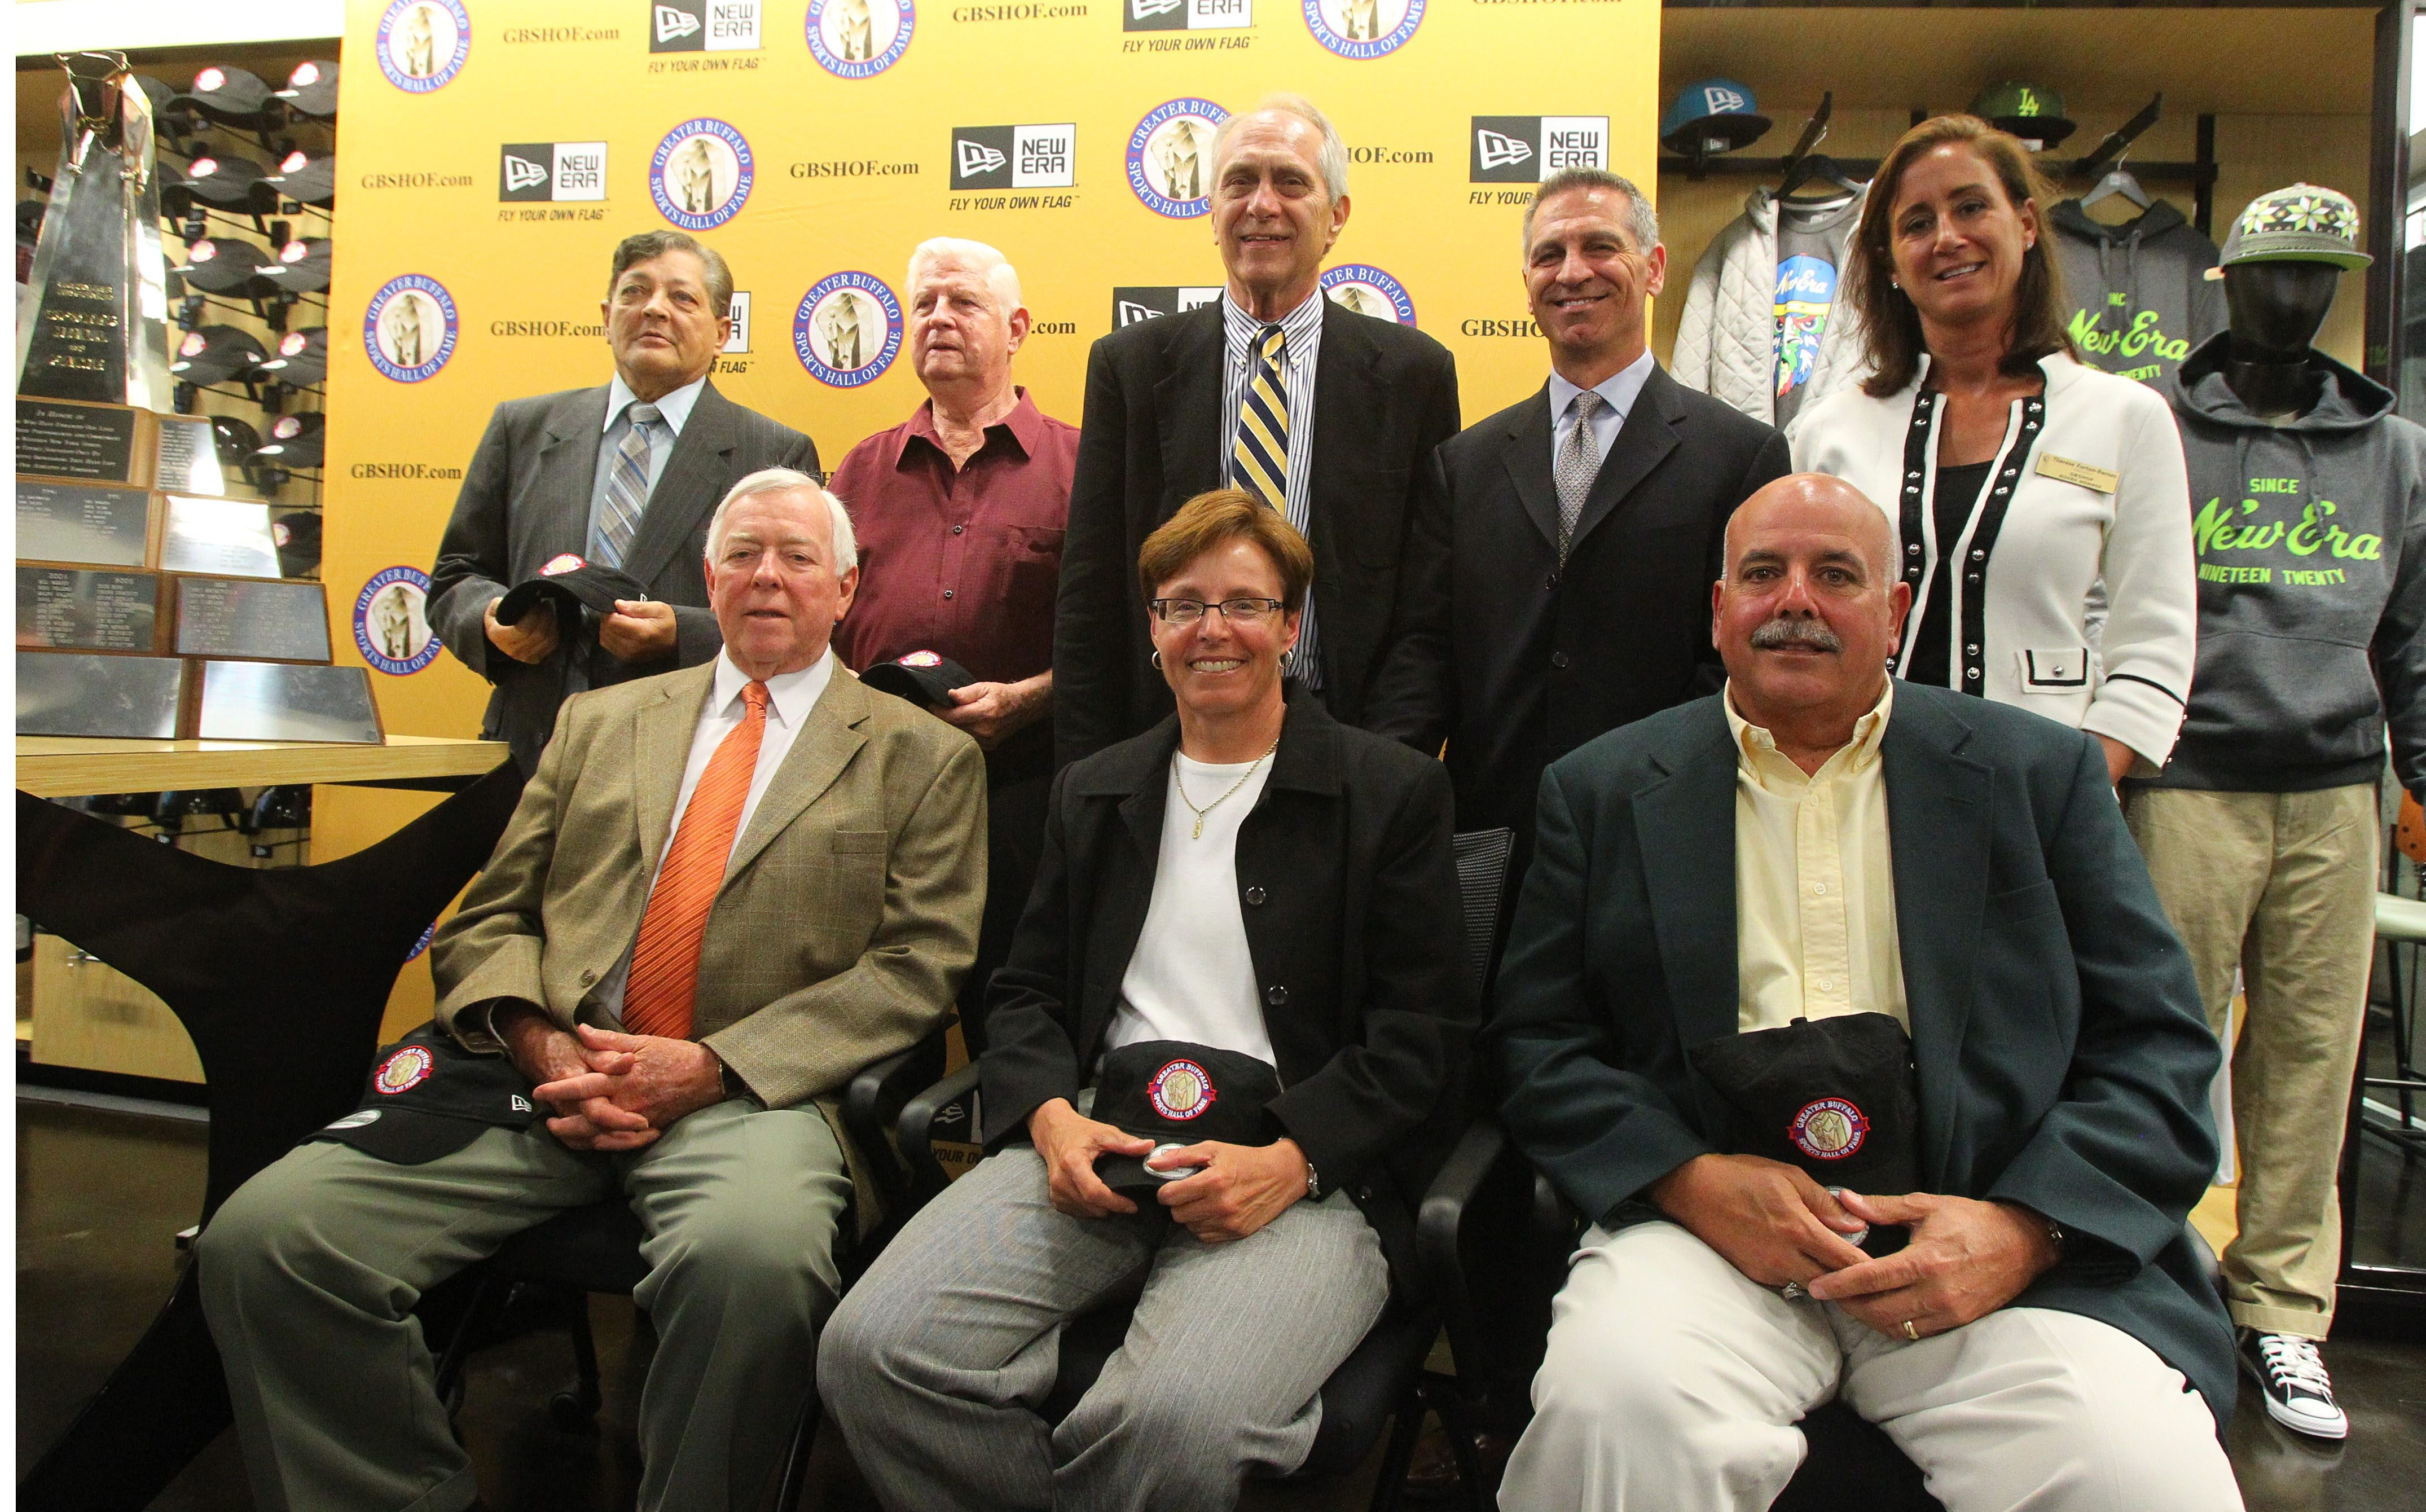 The 2013 Greater Buffalo Sports Hall of Fame Class – back row, from left: Wally Plekan (for his father Walter), Art Jeziorski, Milt Northrop, Phil McConkey, Therese Forton-Barnes (GBSHOF Board President).  Front row: Fred Hartrick, Pam Amabile and Dick Diminuco. Not pictured: Todd Marchant and Jennifer Suhr.